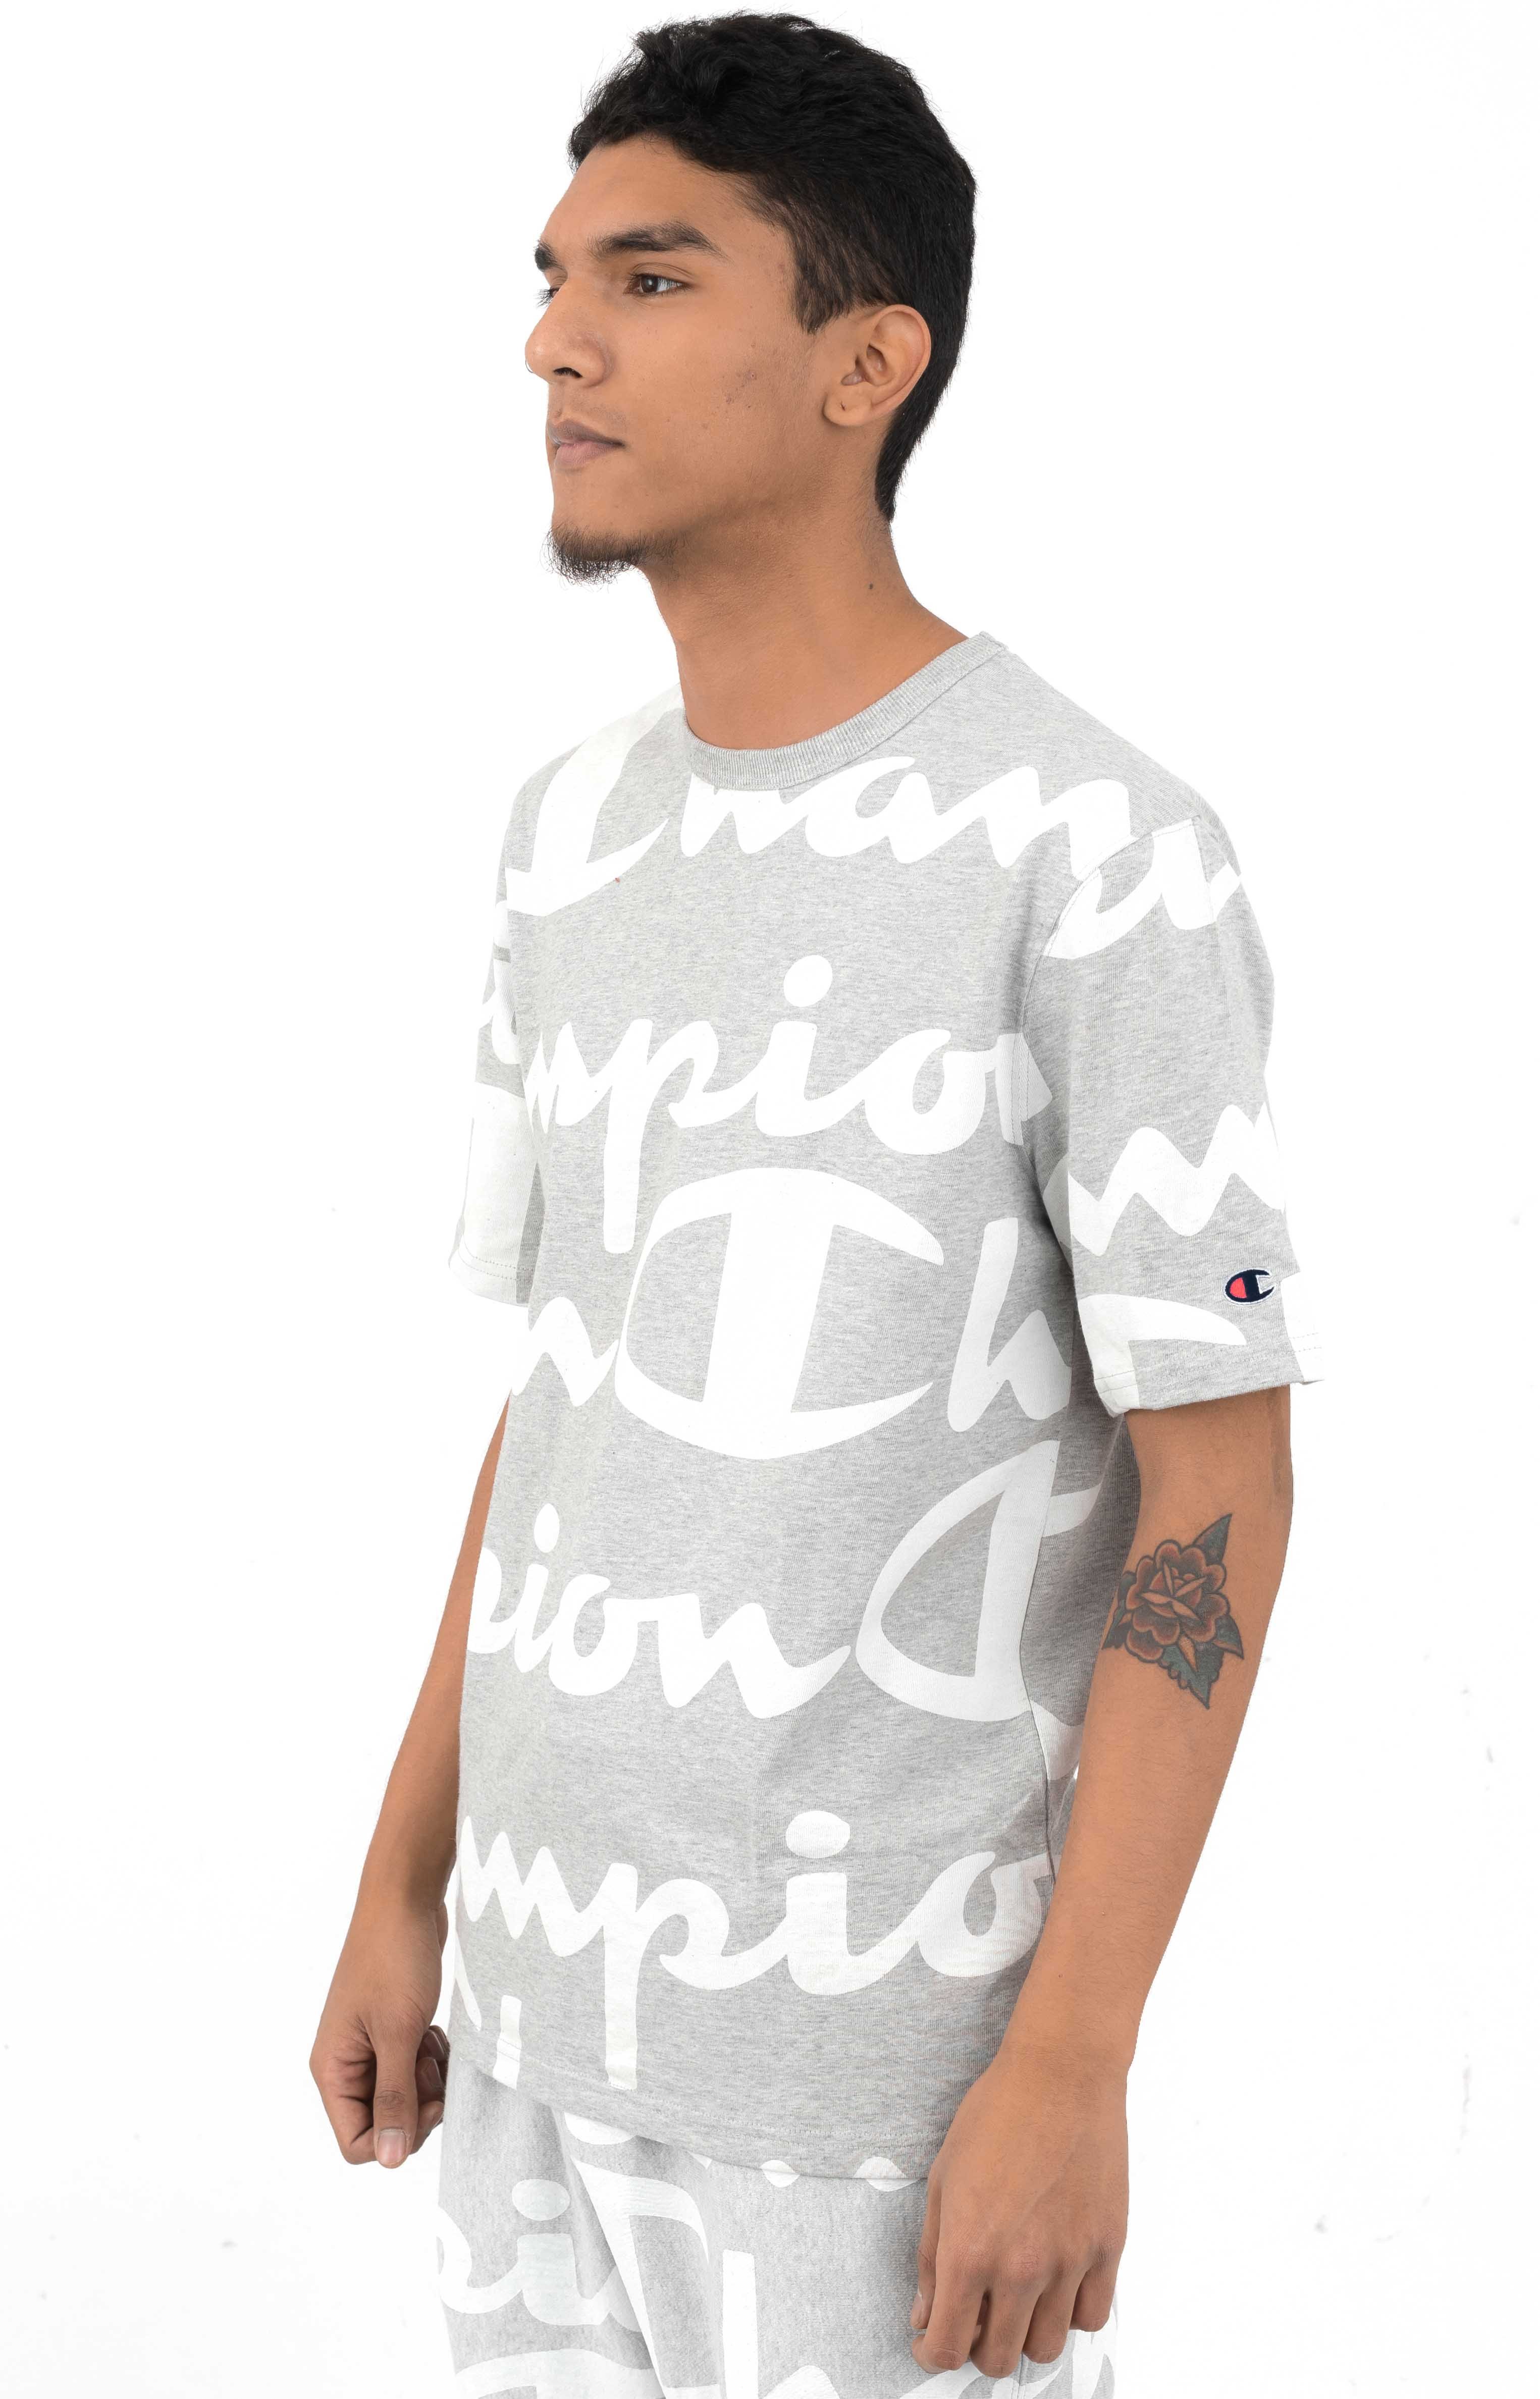 Heritage Giant All Over Script T-Shirt - Oxford Grey 2